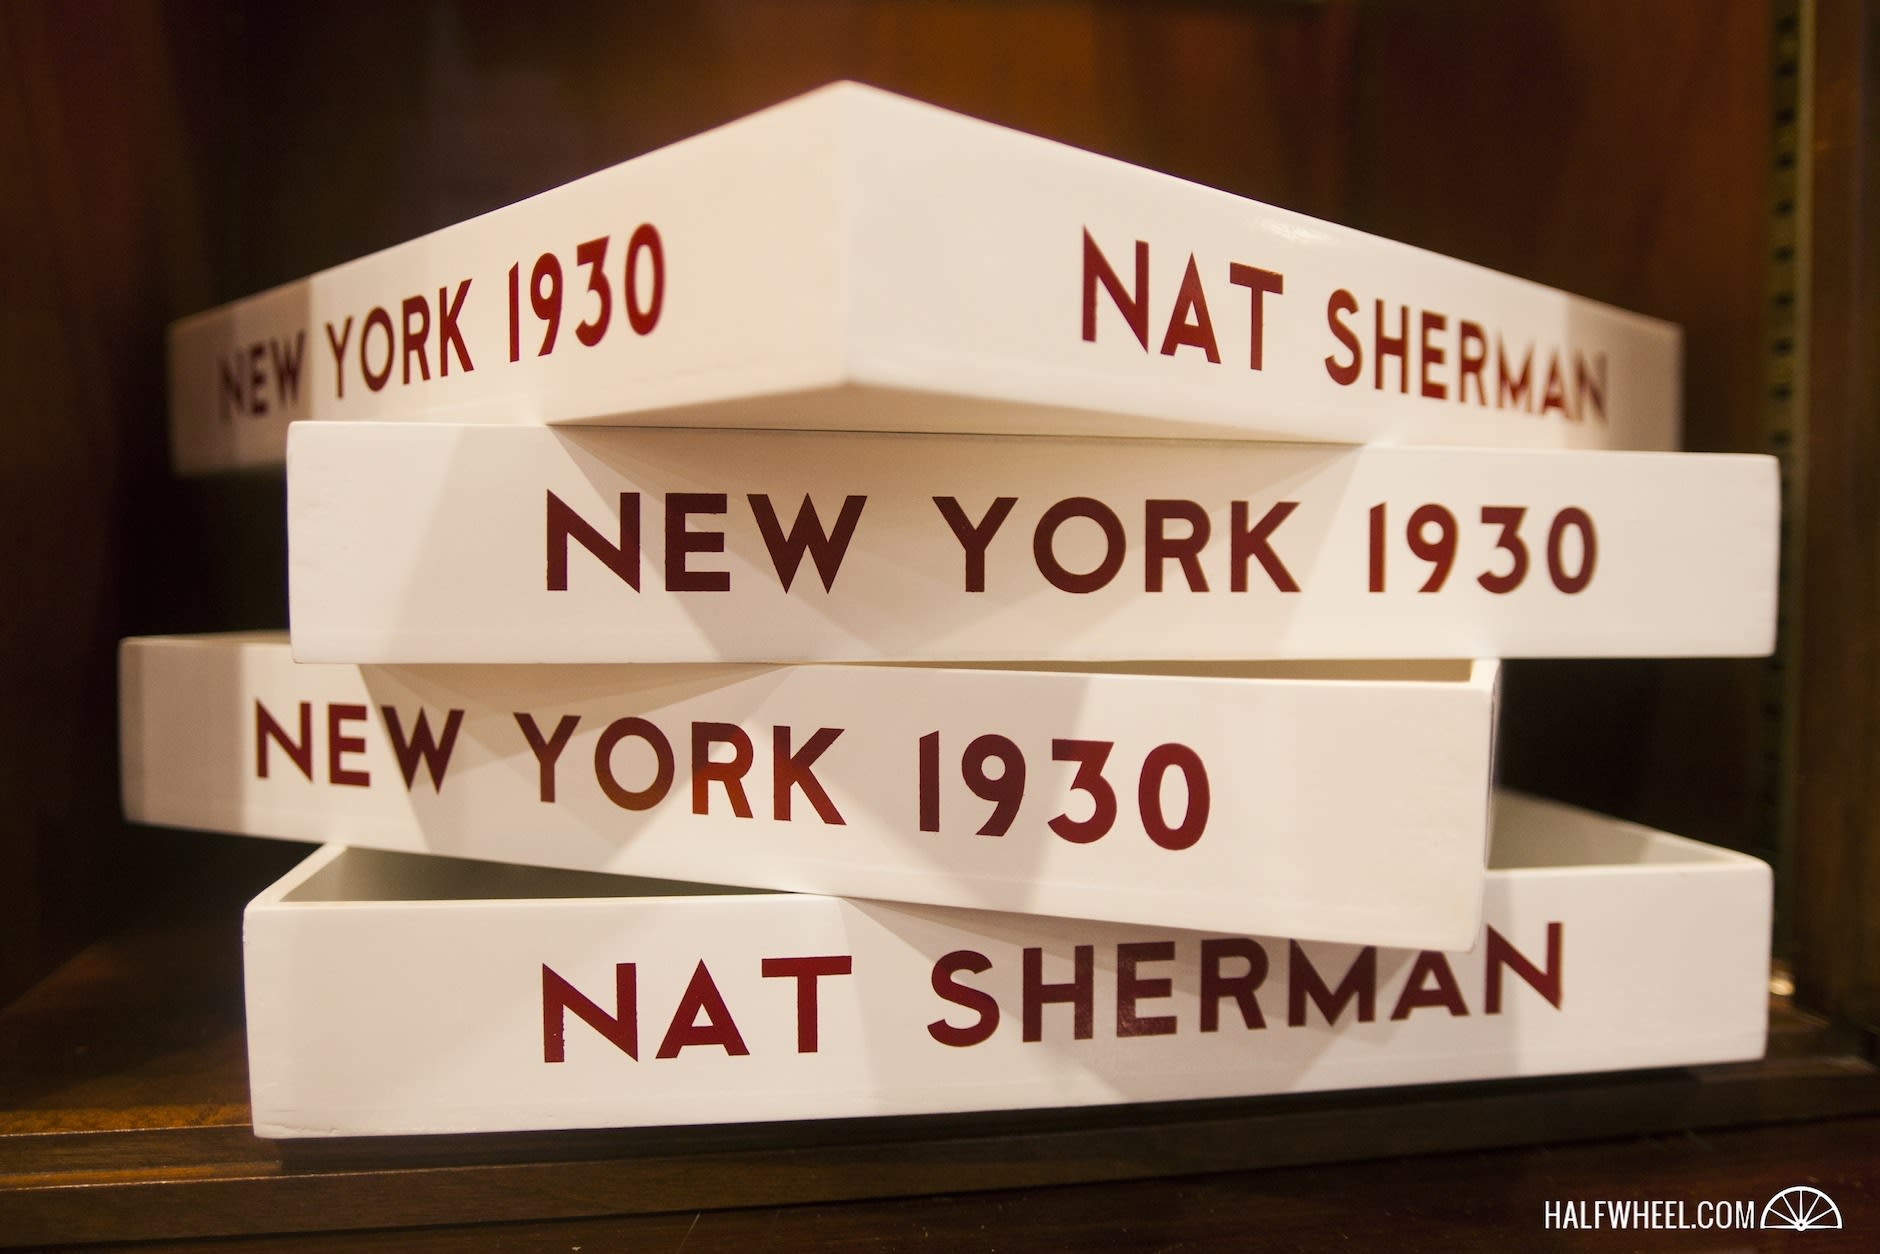 Nat Sherman Shutting Down Cigar Business, Retail Store Next Month Featured Image